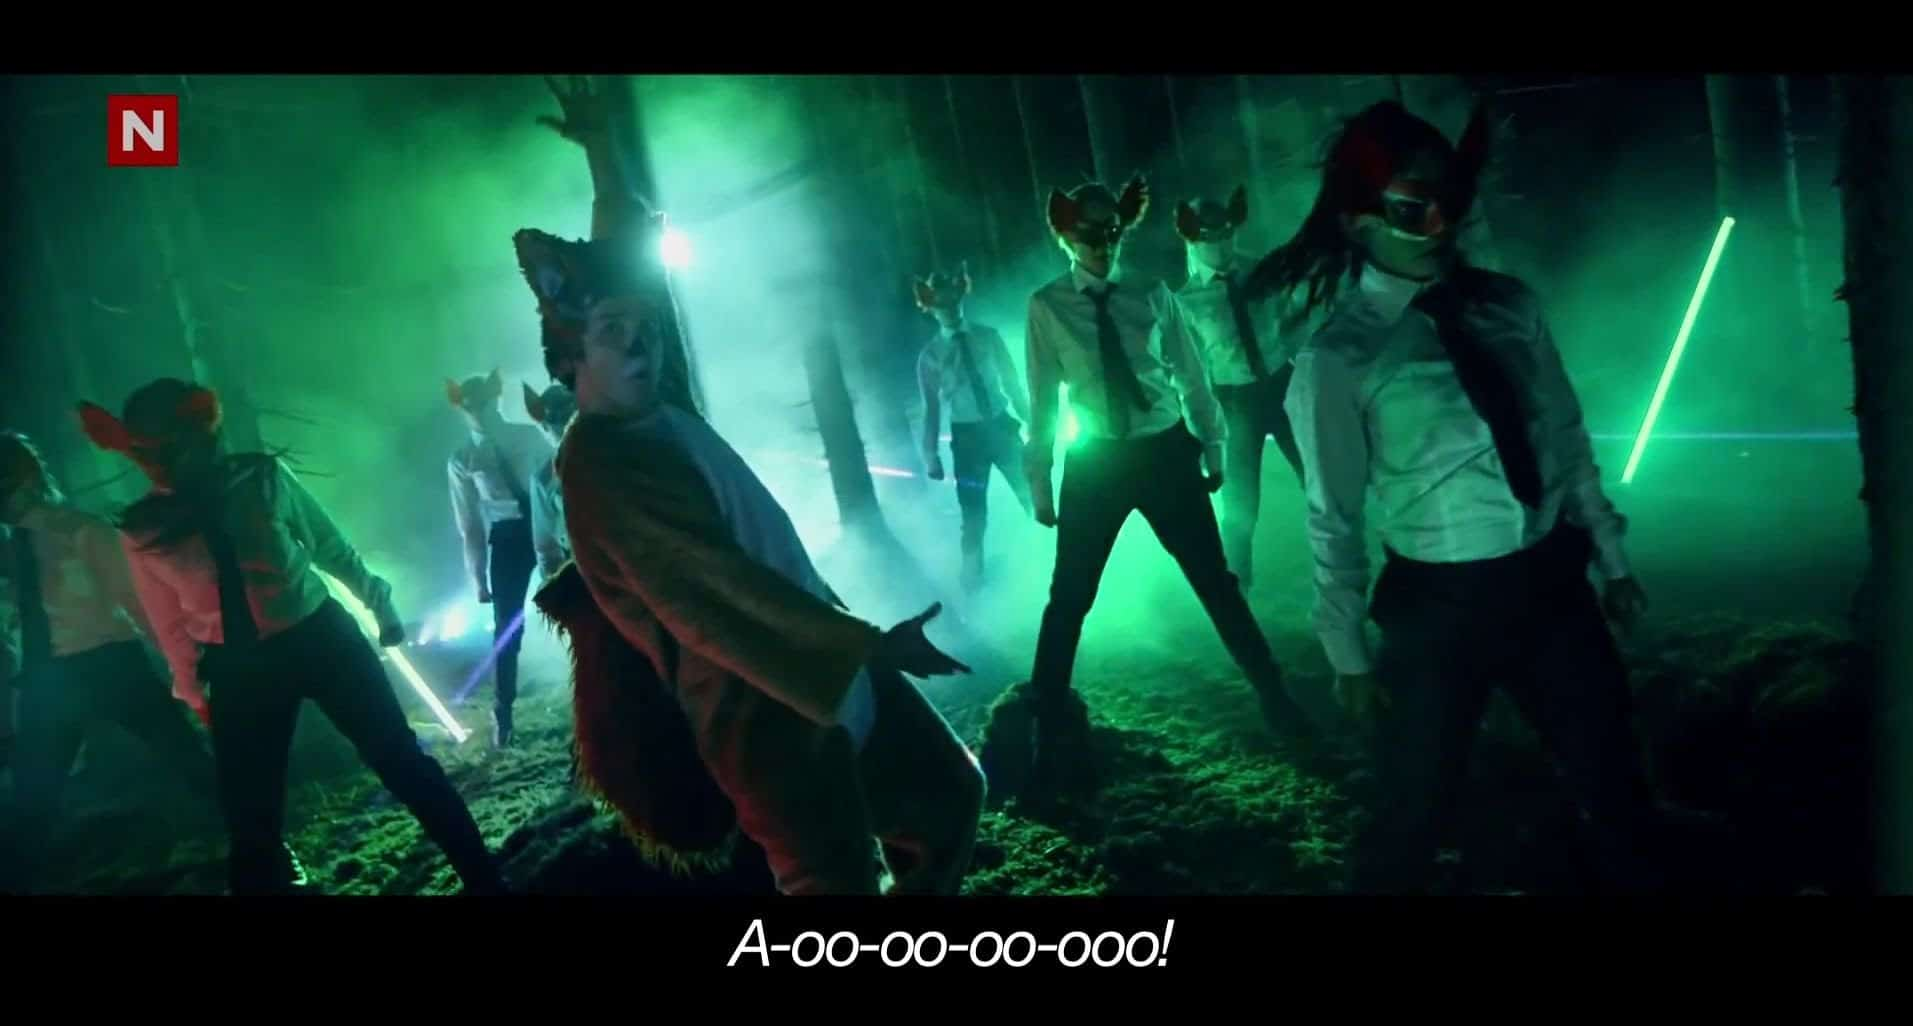 Seriously Though, What Does a Fox Say? (Watch)